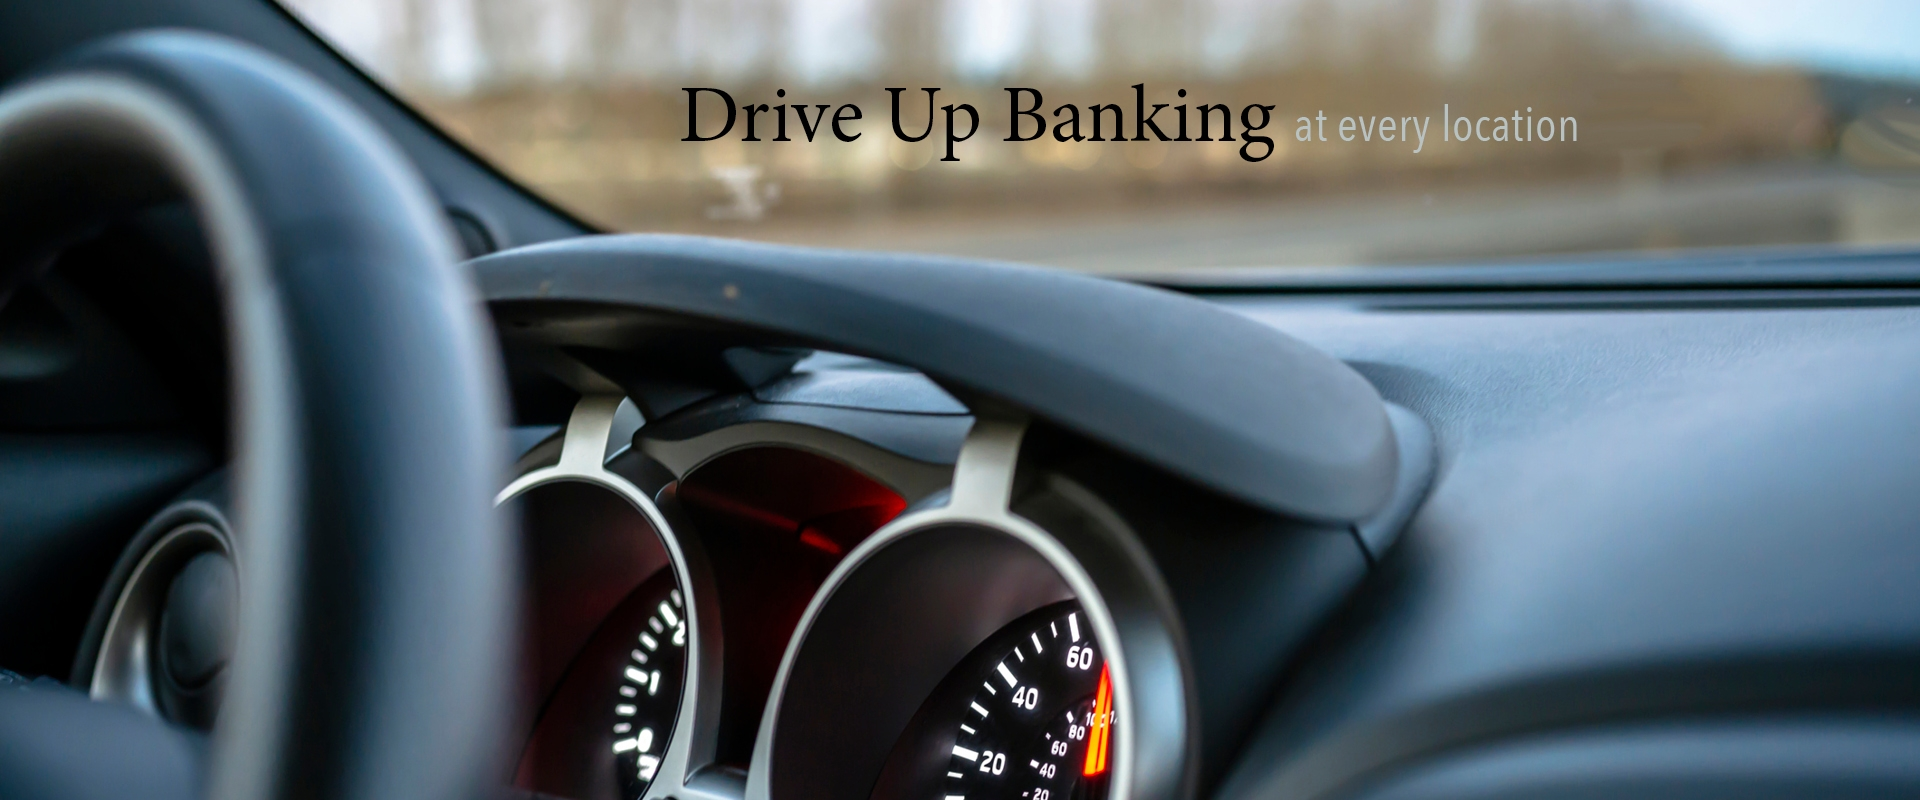 Drive up banking at every location Banner